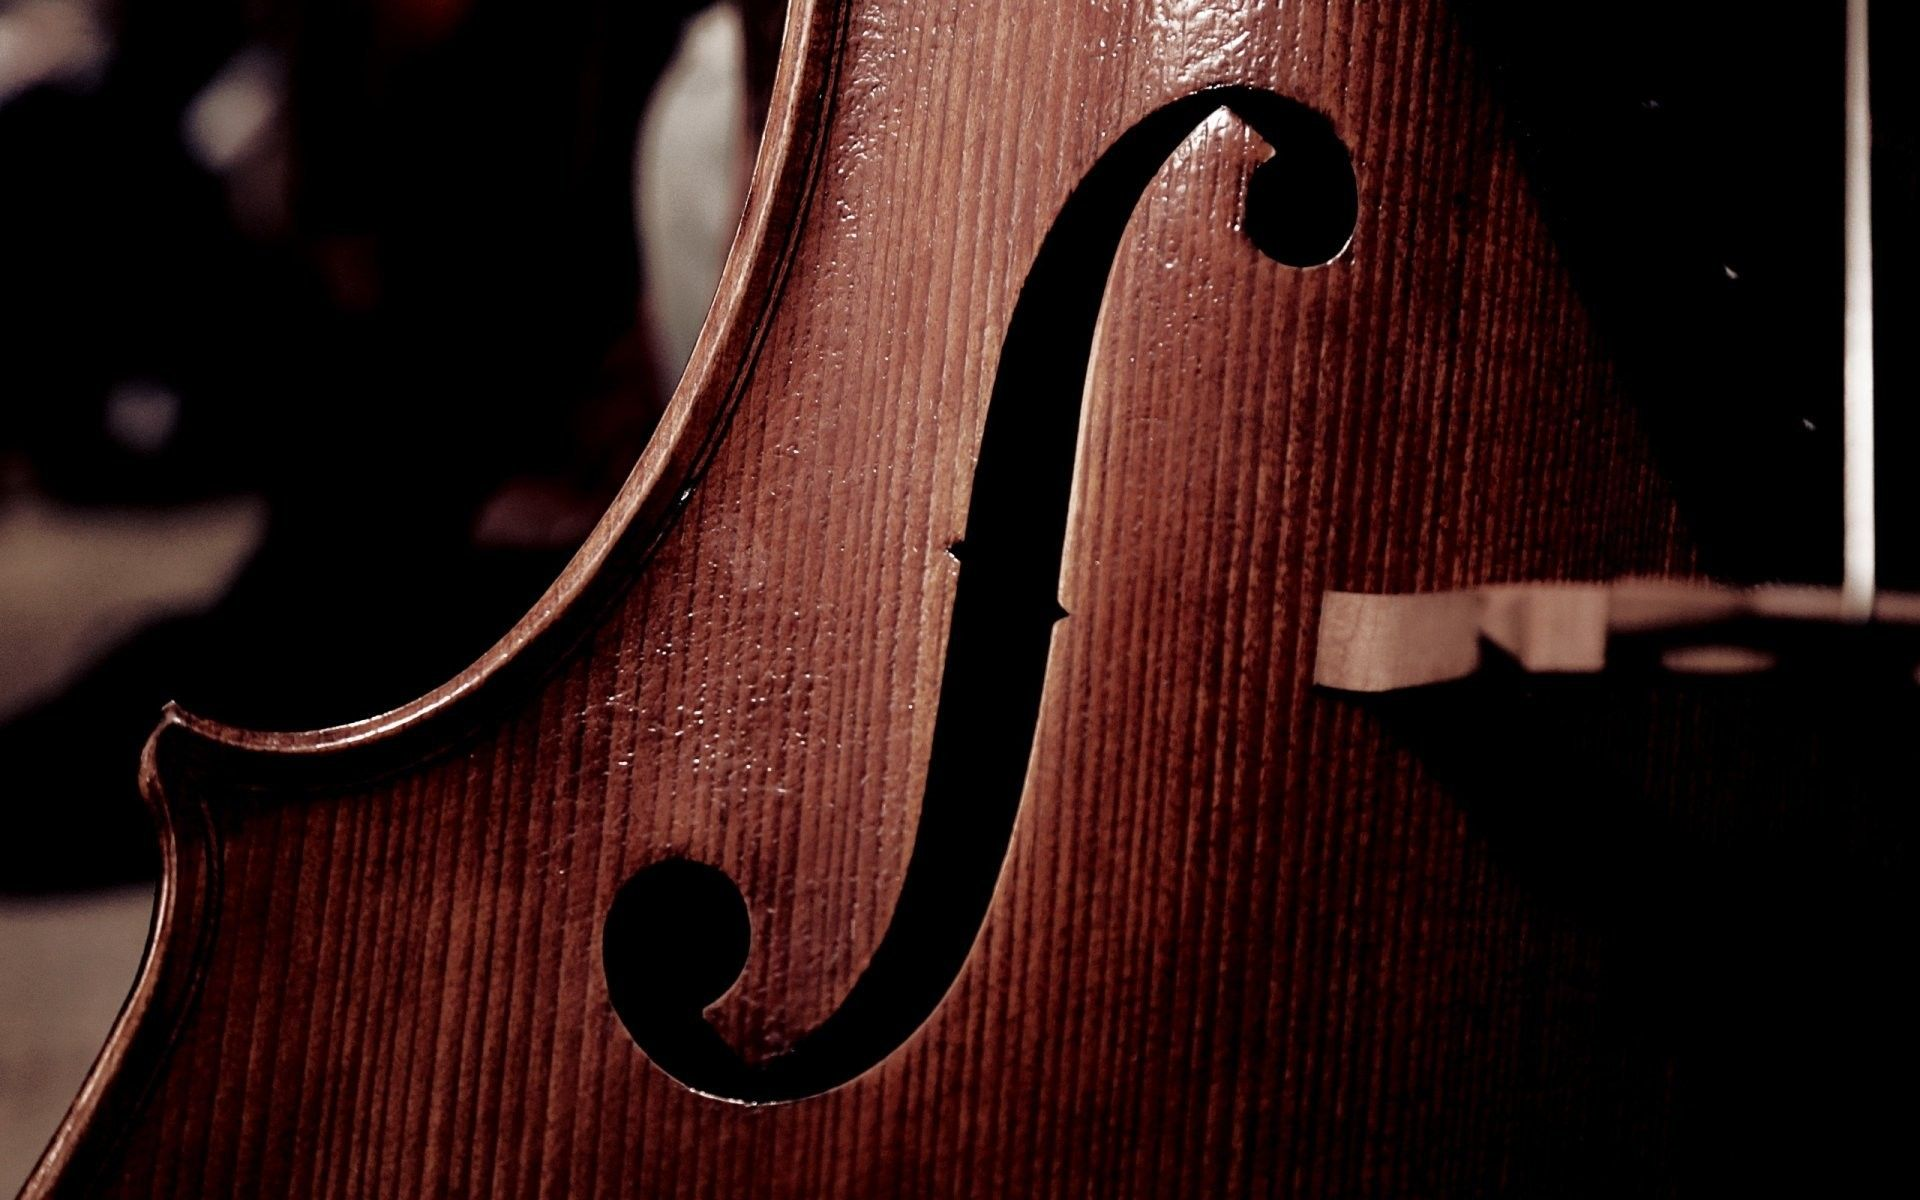 cello up close wallpaper 72344